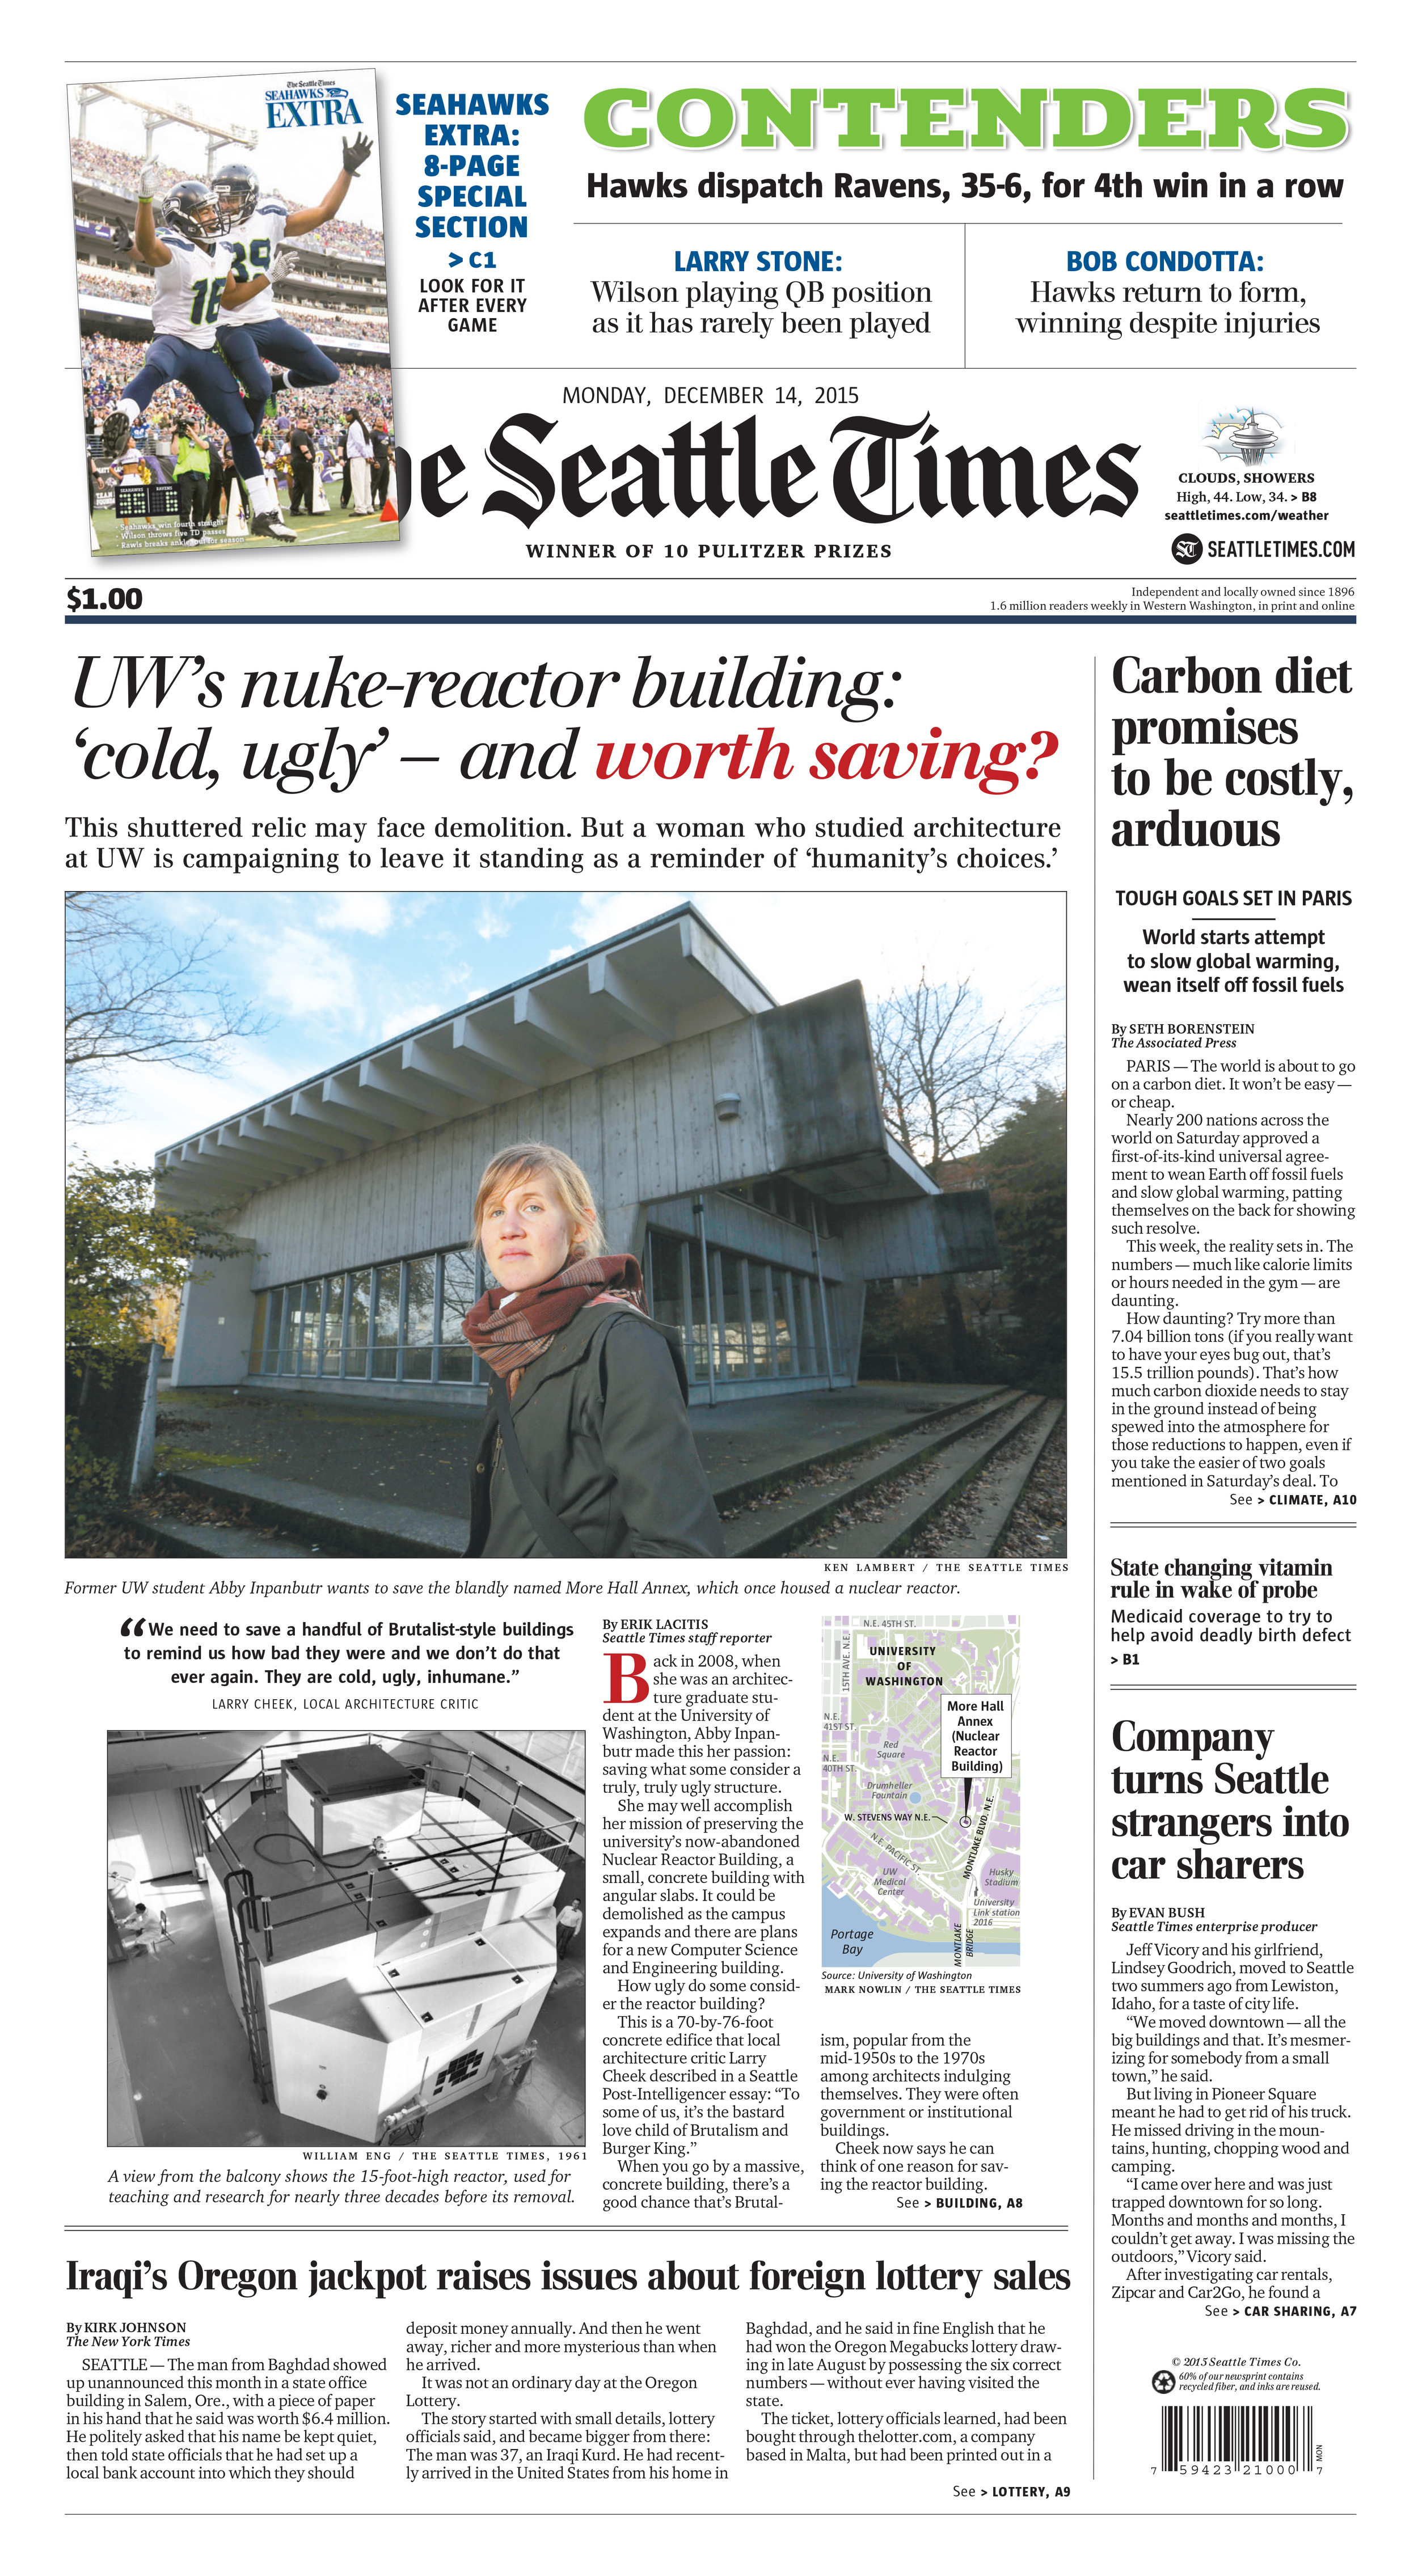 Front page of  The Seattle Times  on December 14 featuring the Nuclear Reactor Building.